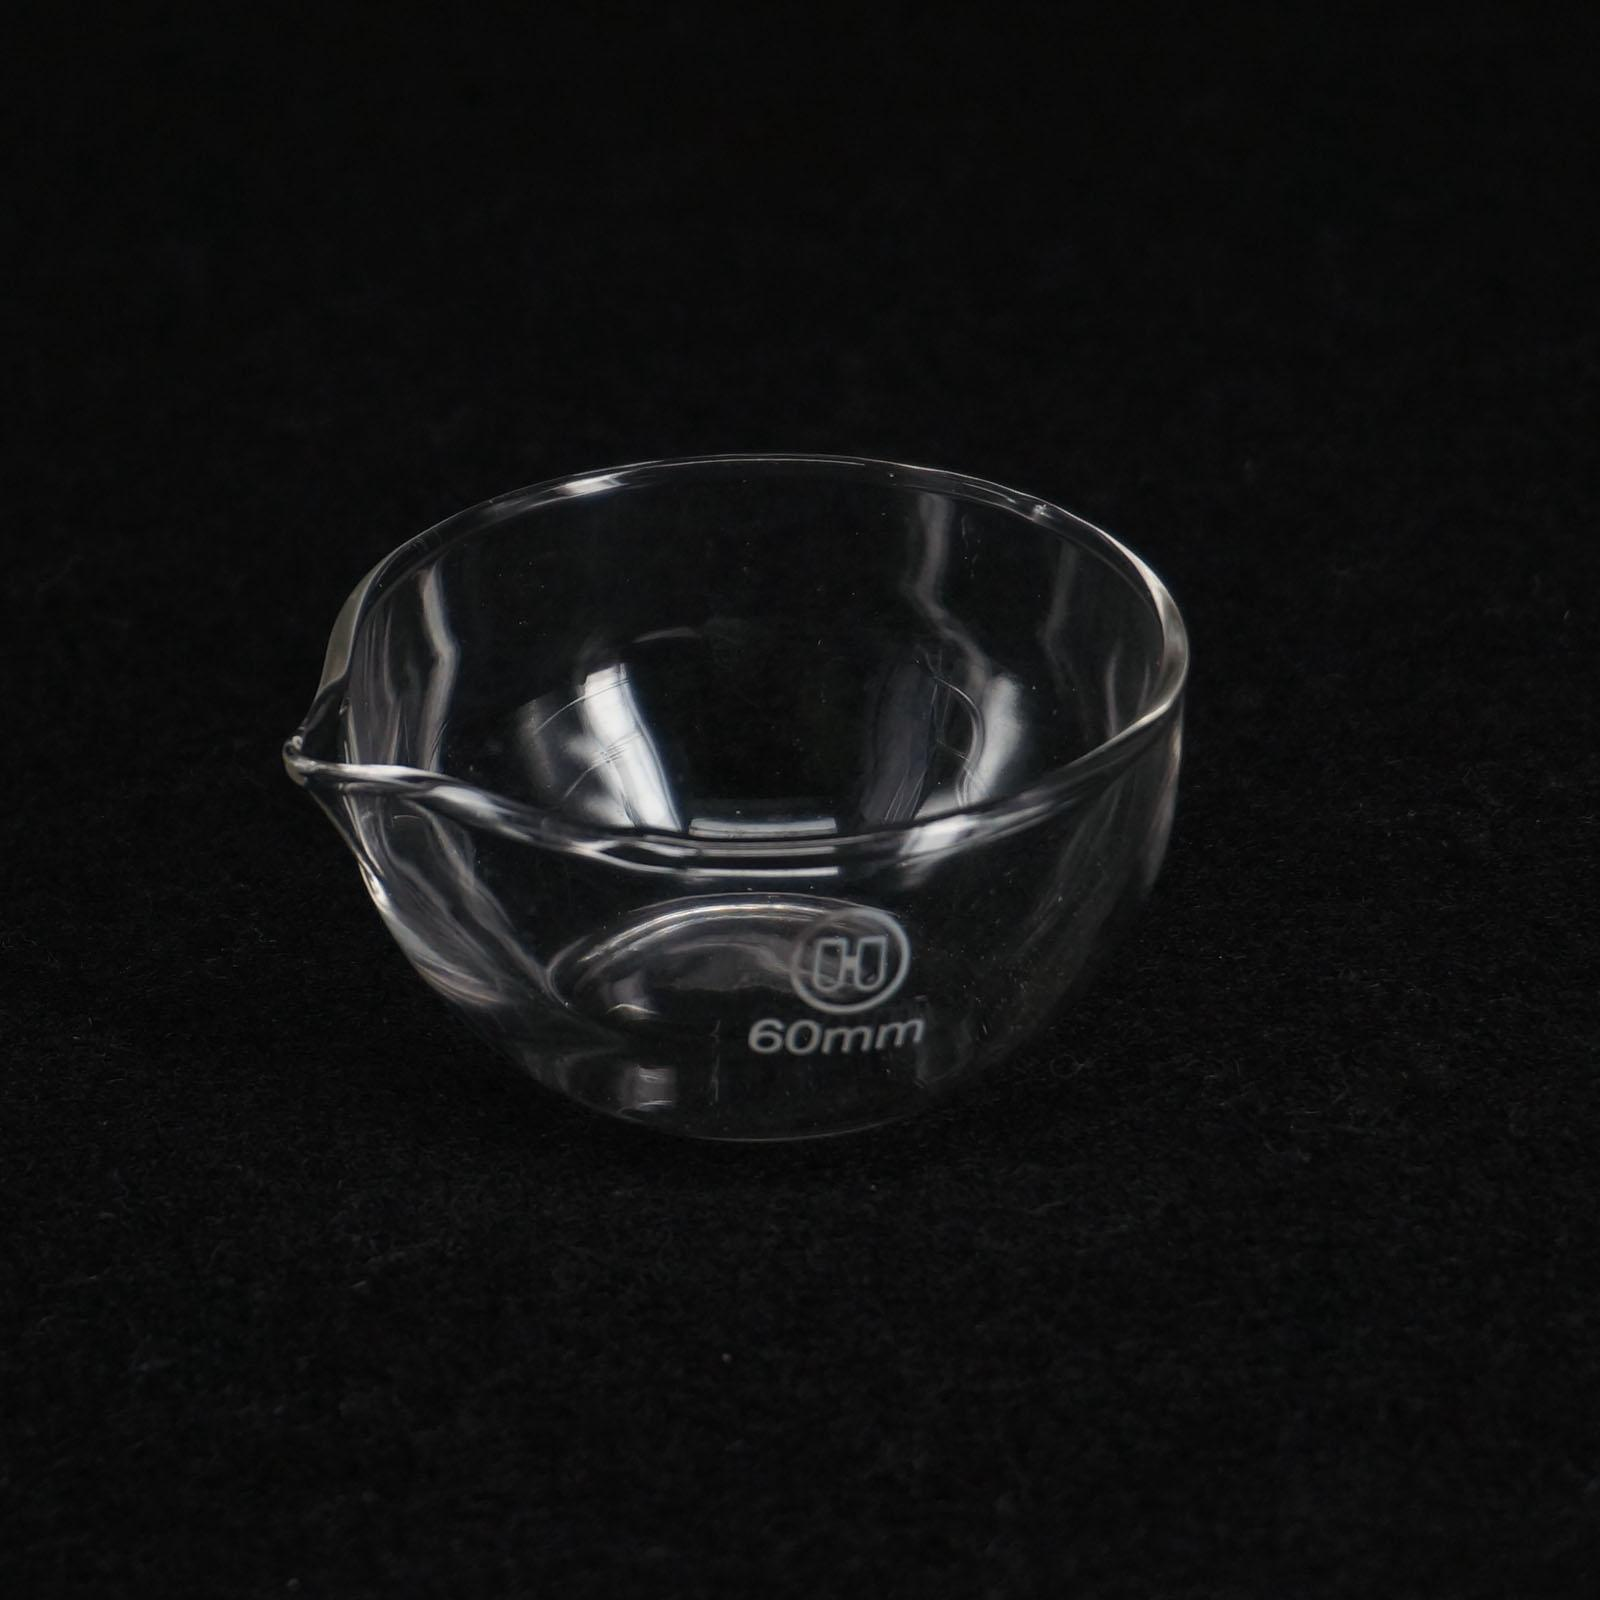 60mm Diameter Lab Glass Evaporating Dish Flat Bottom With Spout For Chemistry